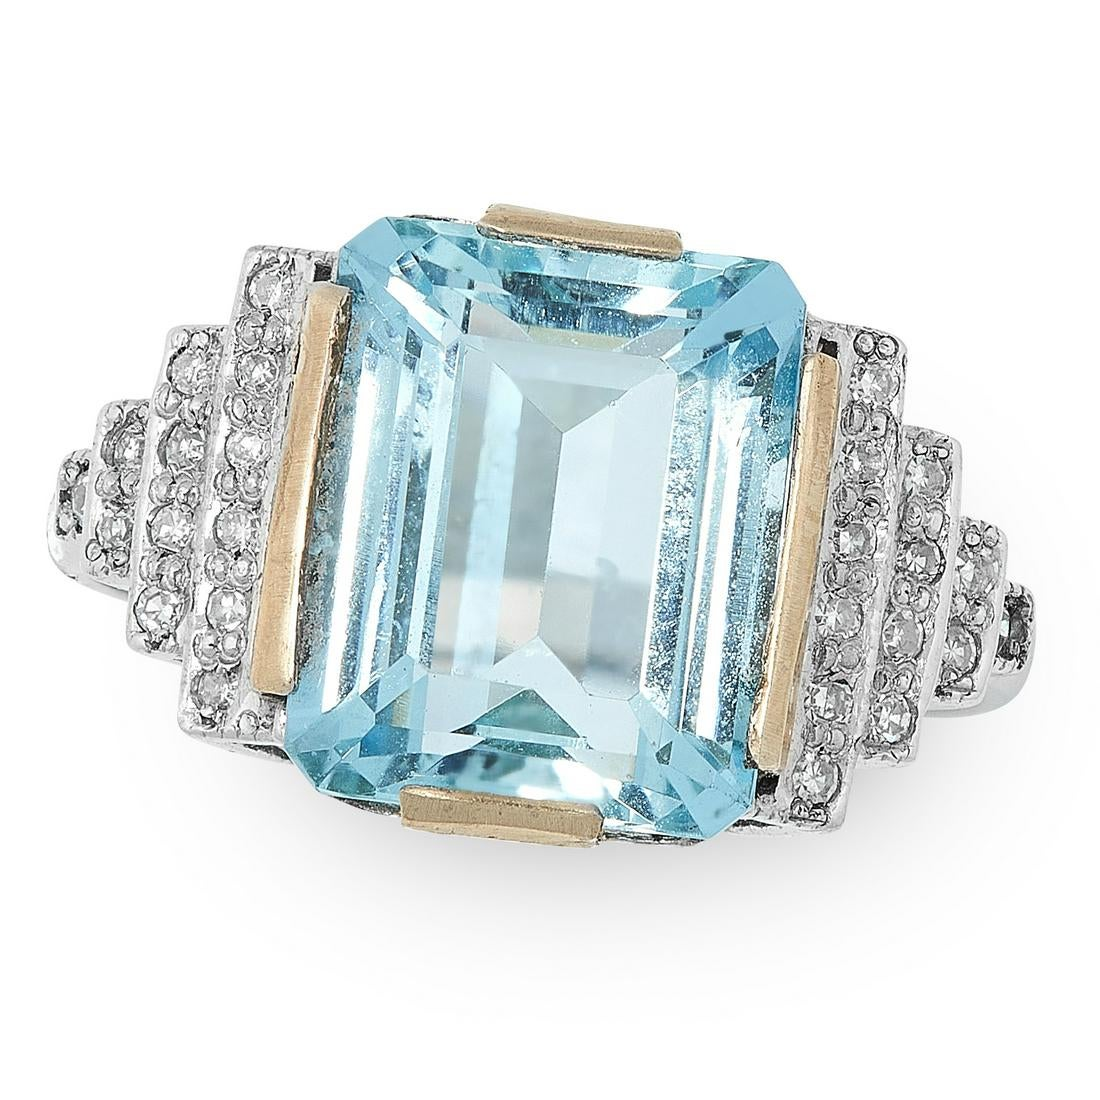 AN AQUAMARINE AND DIAMOND RING set with an emerald cut aquamarine of 4.19 carats between stepped